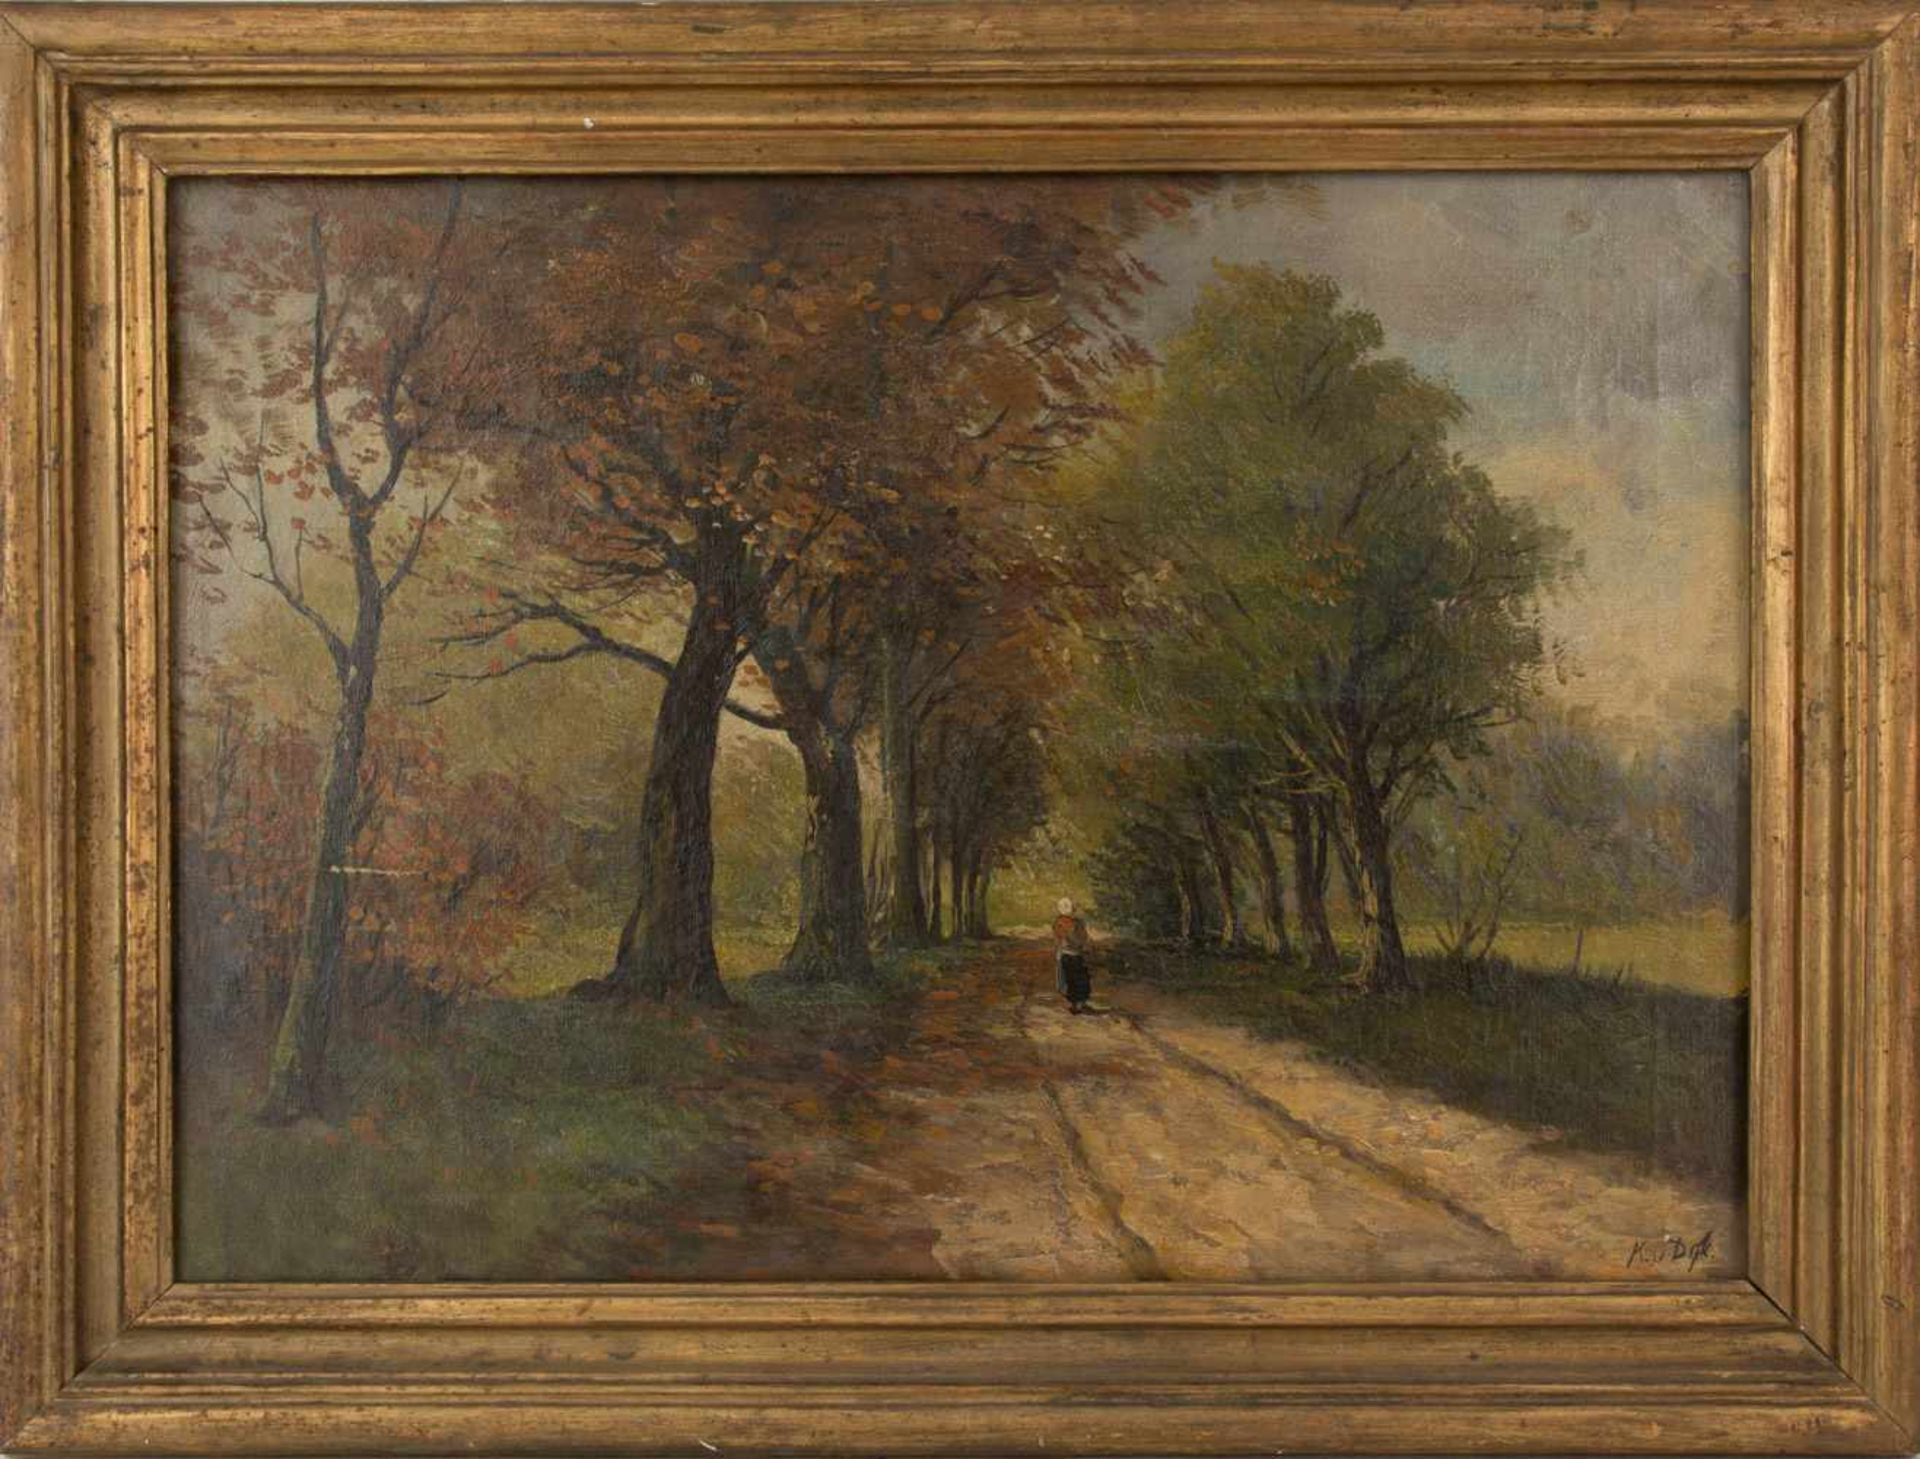 Los 19 - KLAAS HENDRIK VAN DIJK. Country road, oil on canvas, signed and framed Country road, oil on